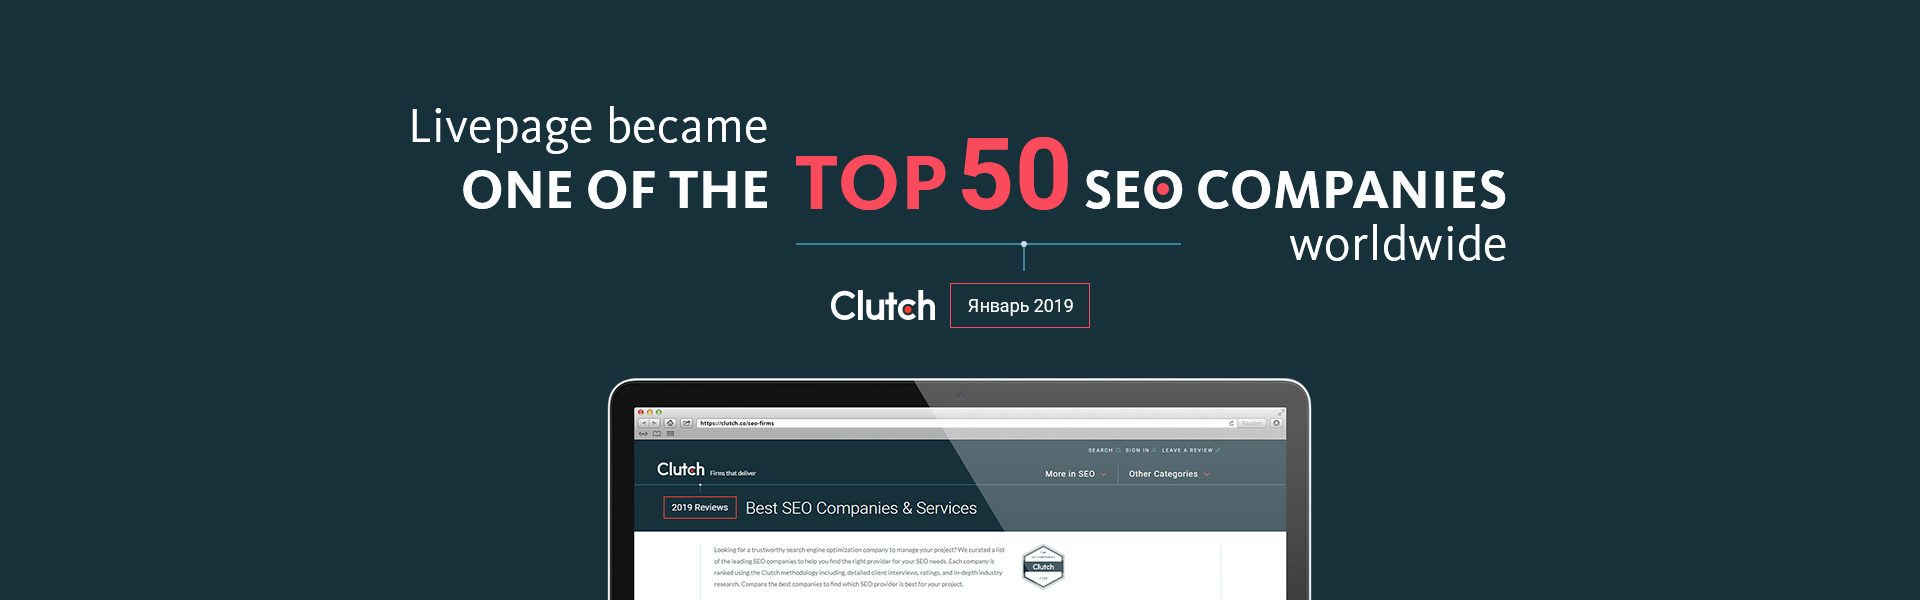 livepage in top 50 seo companies